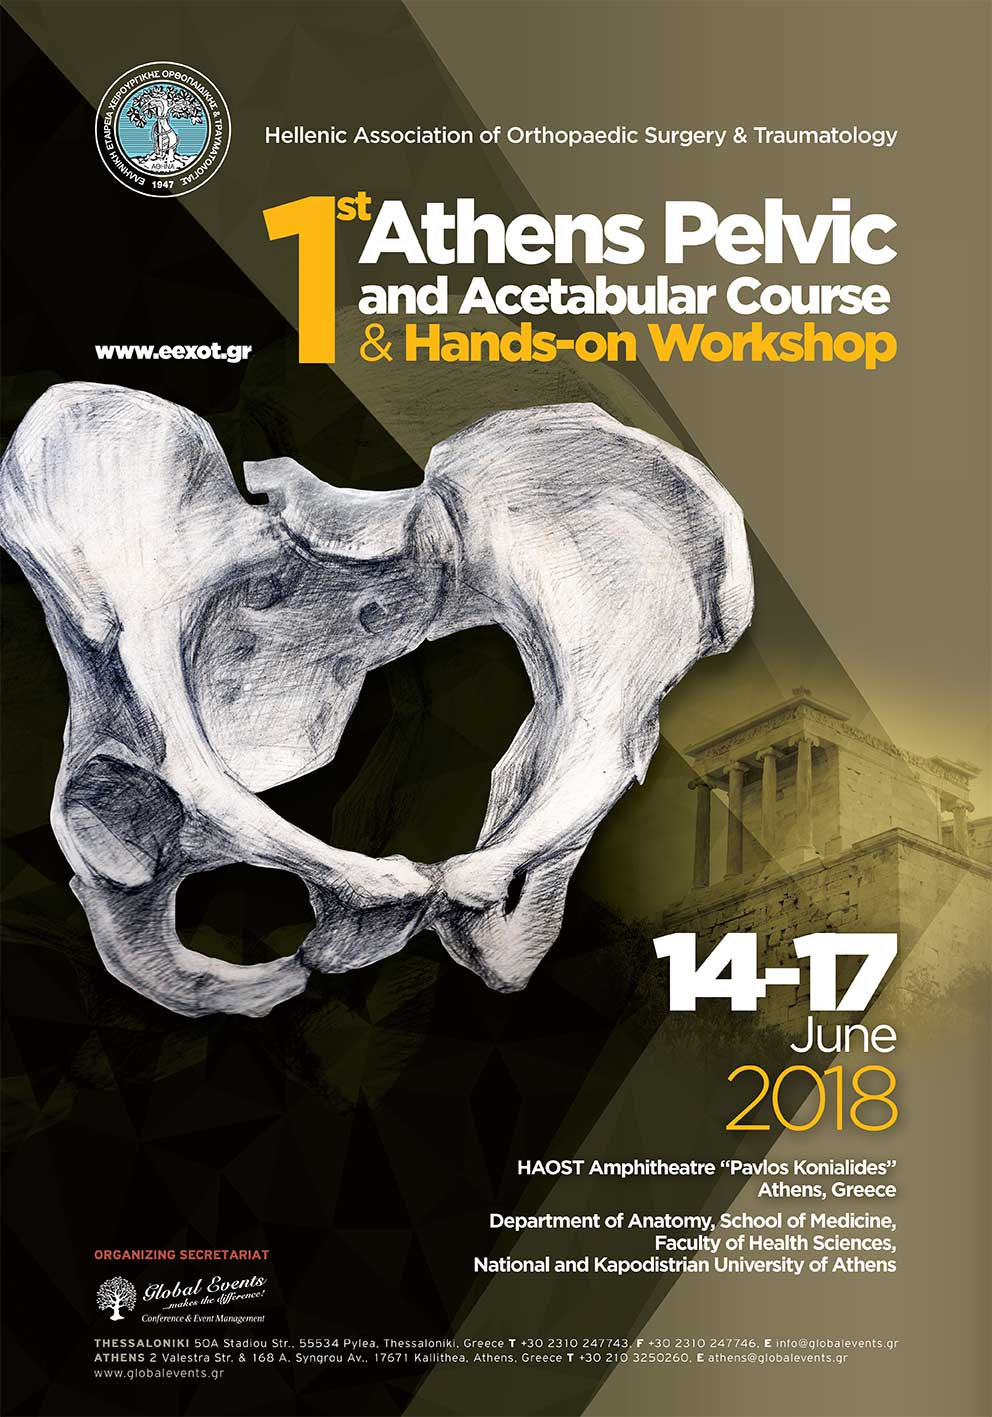 383. 1st Athens Pelvic and Acetabular Course and Hands-on Workshop